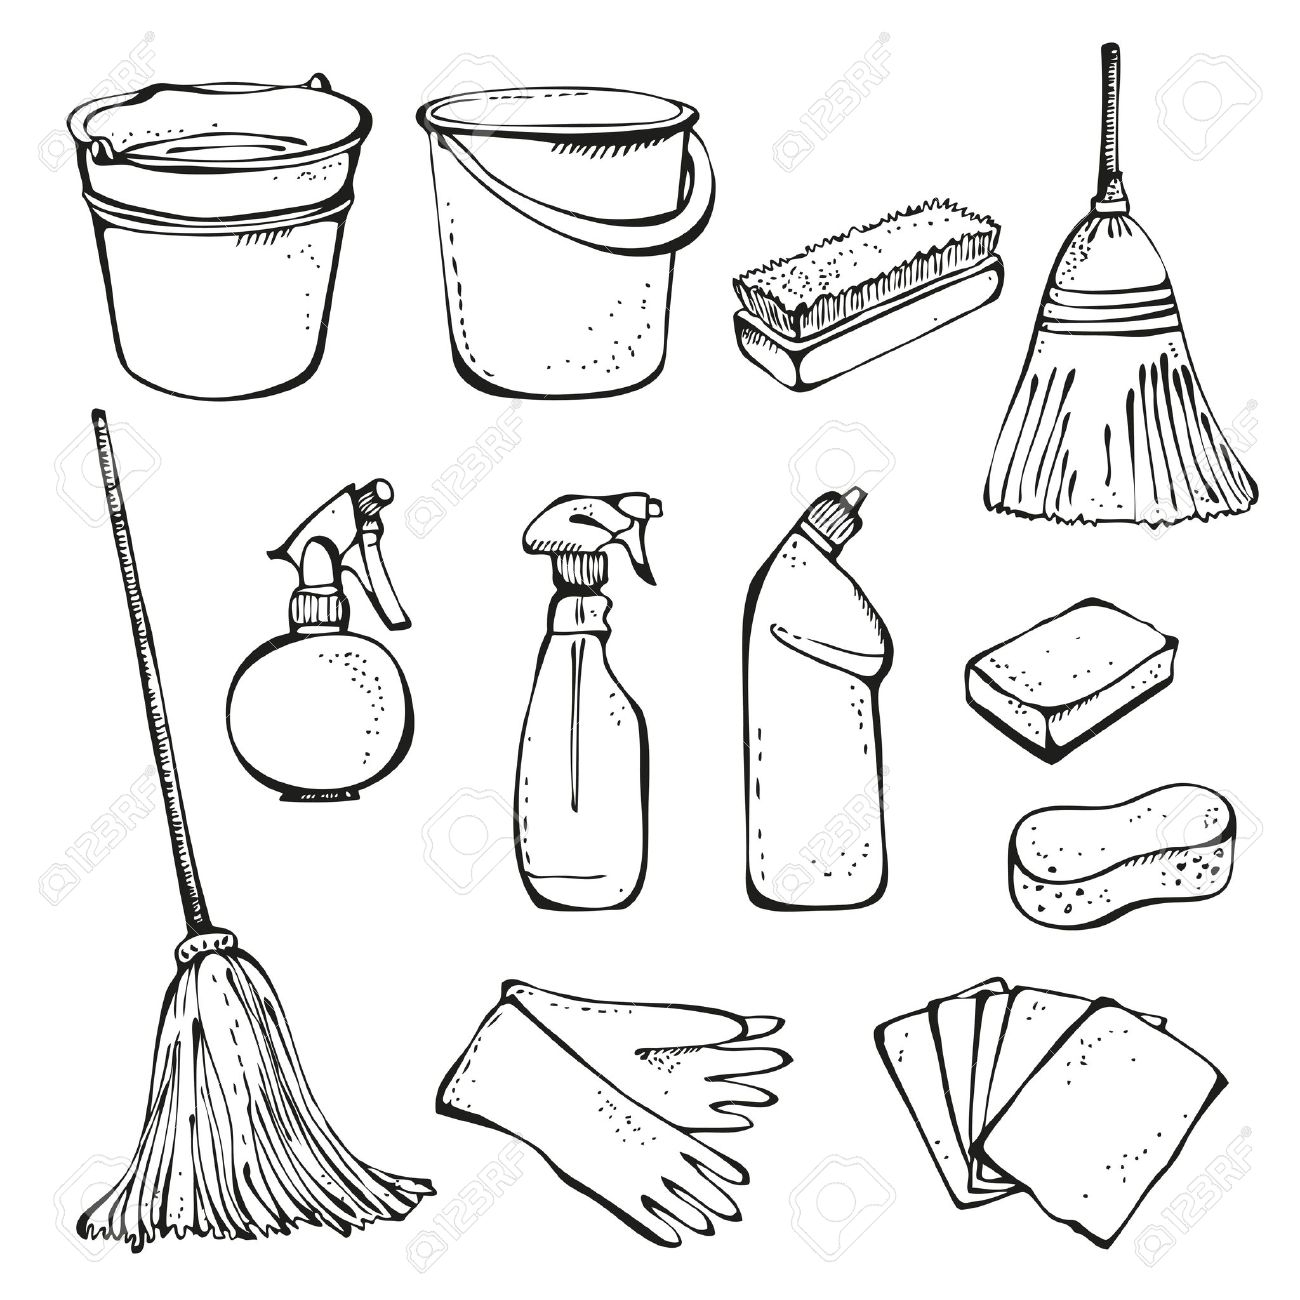 1300x1300 Home Office Cleaning Supplies Doodle Clip Art Icons Stock Vector